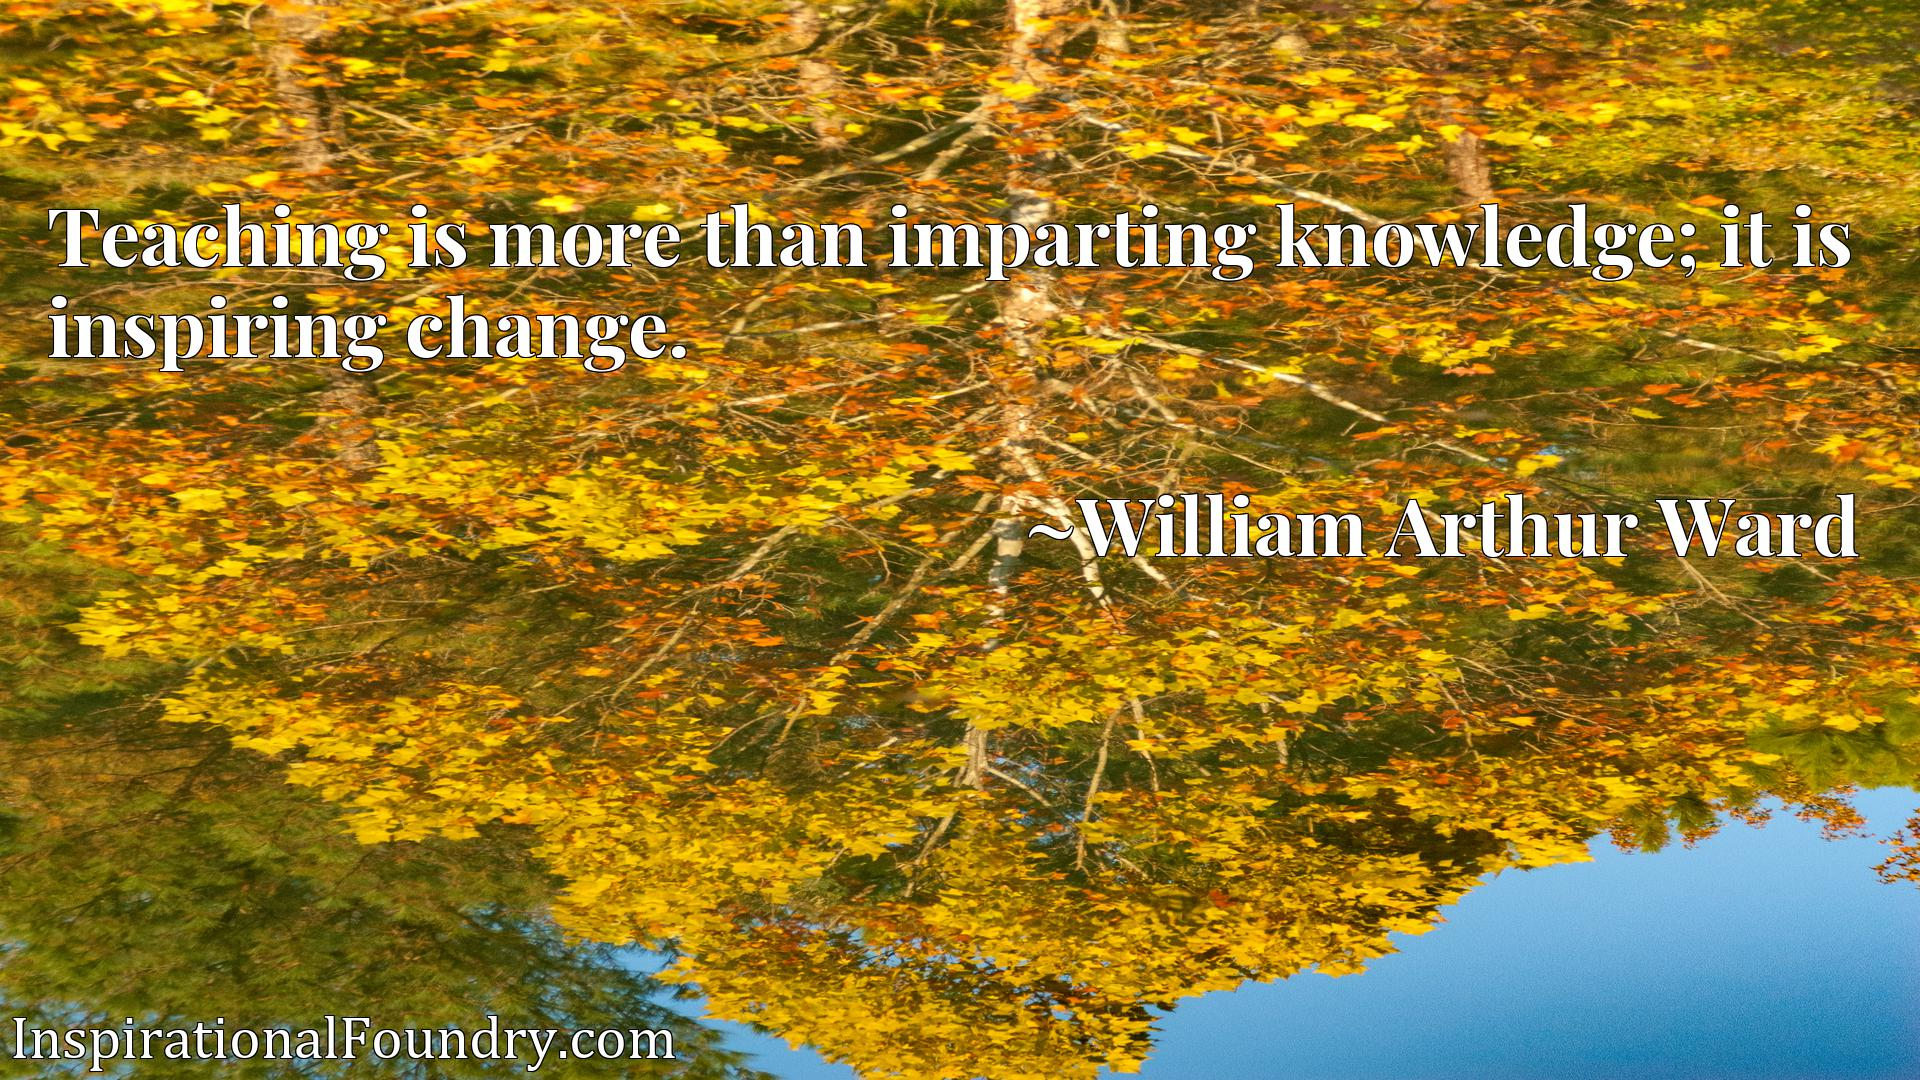 Teaching is more than imparting knowledge; it is inspiring change.